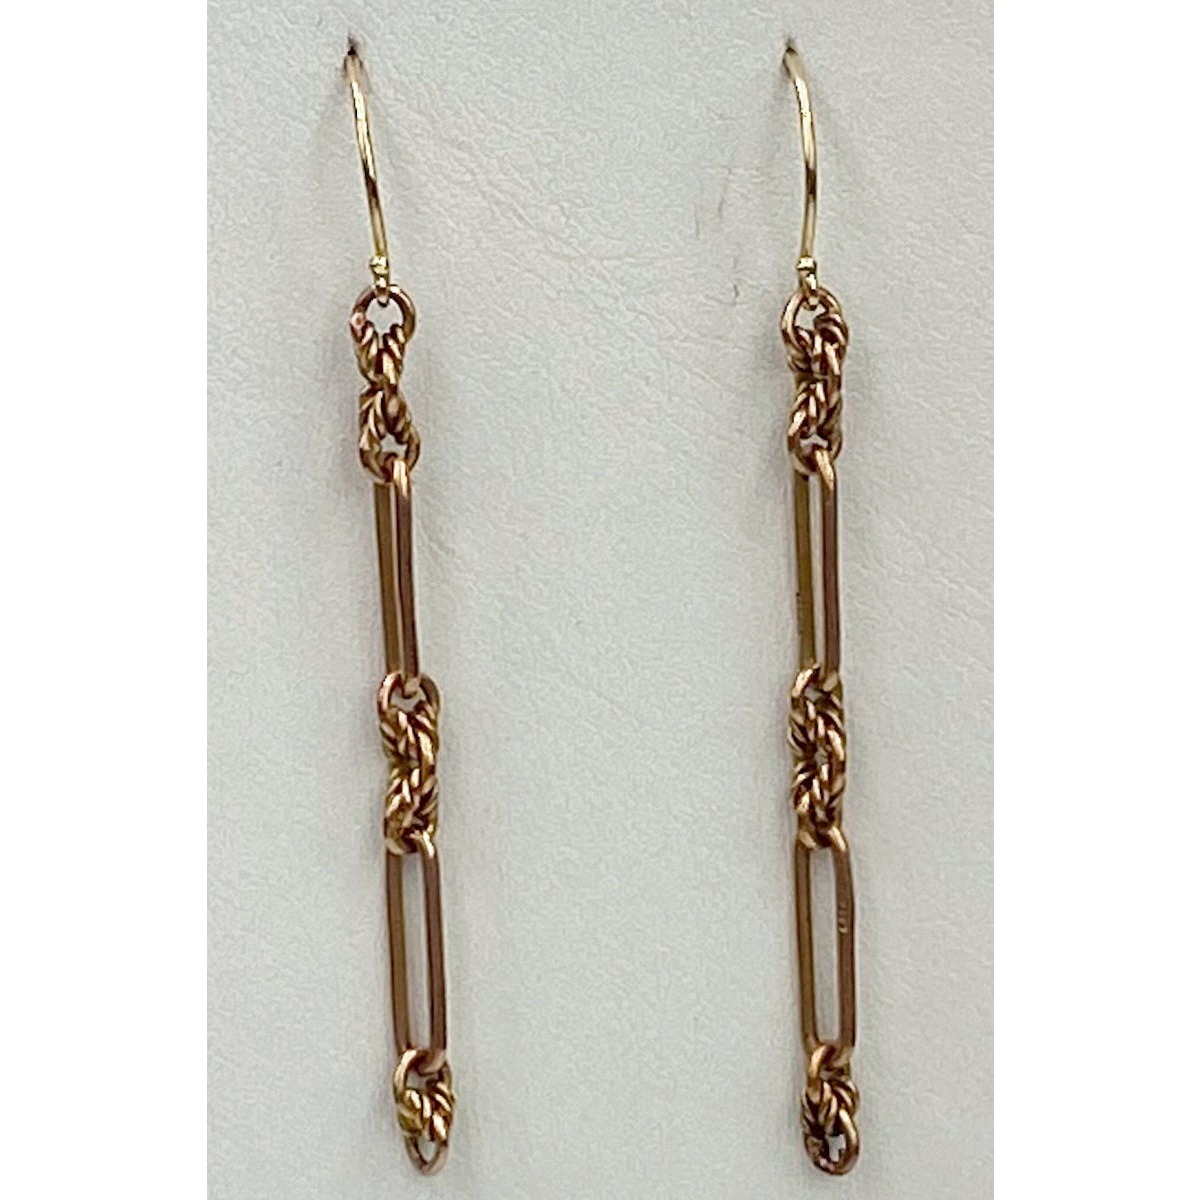 Amazing LONG Trombone Intricate Link Antique English Gold Earrings